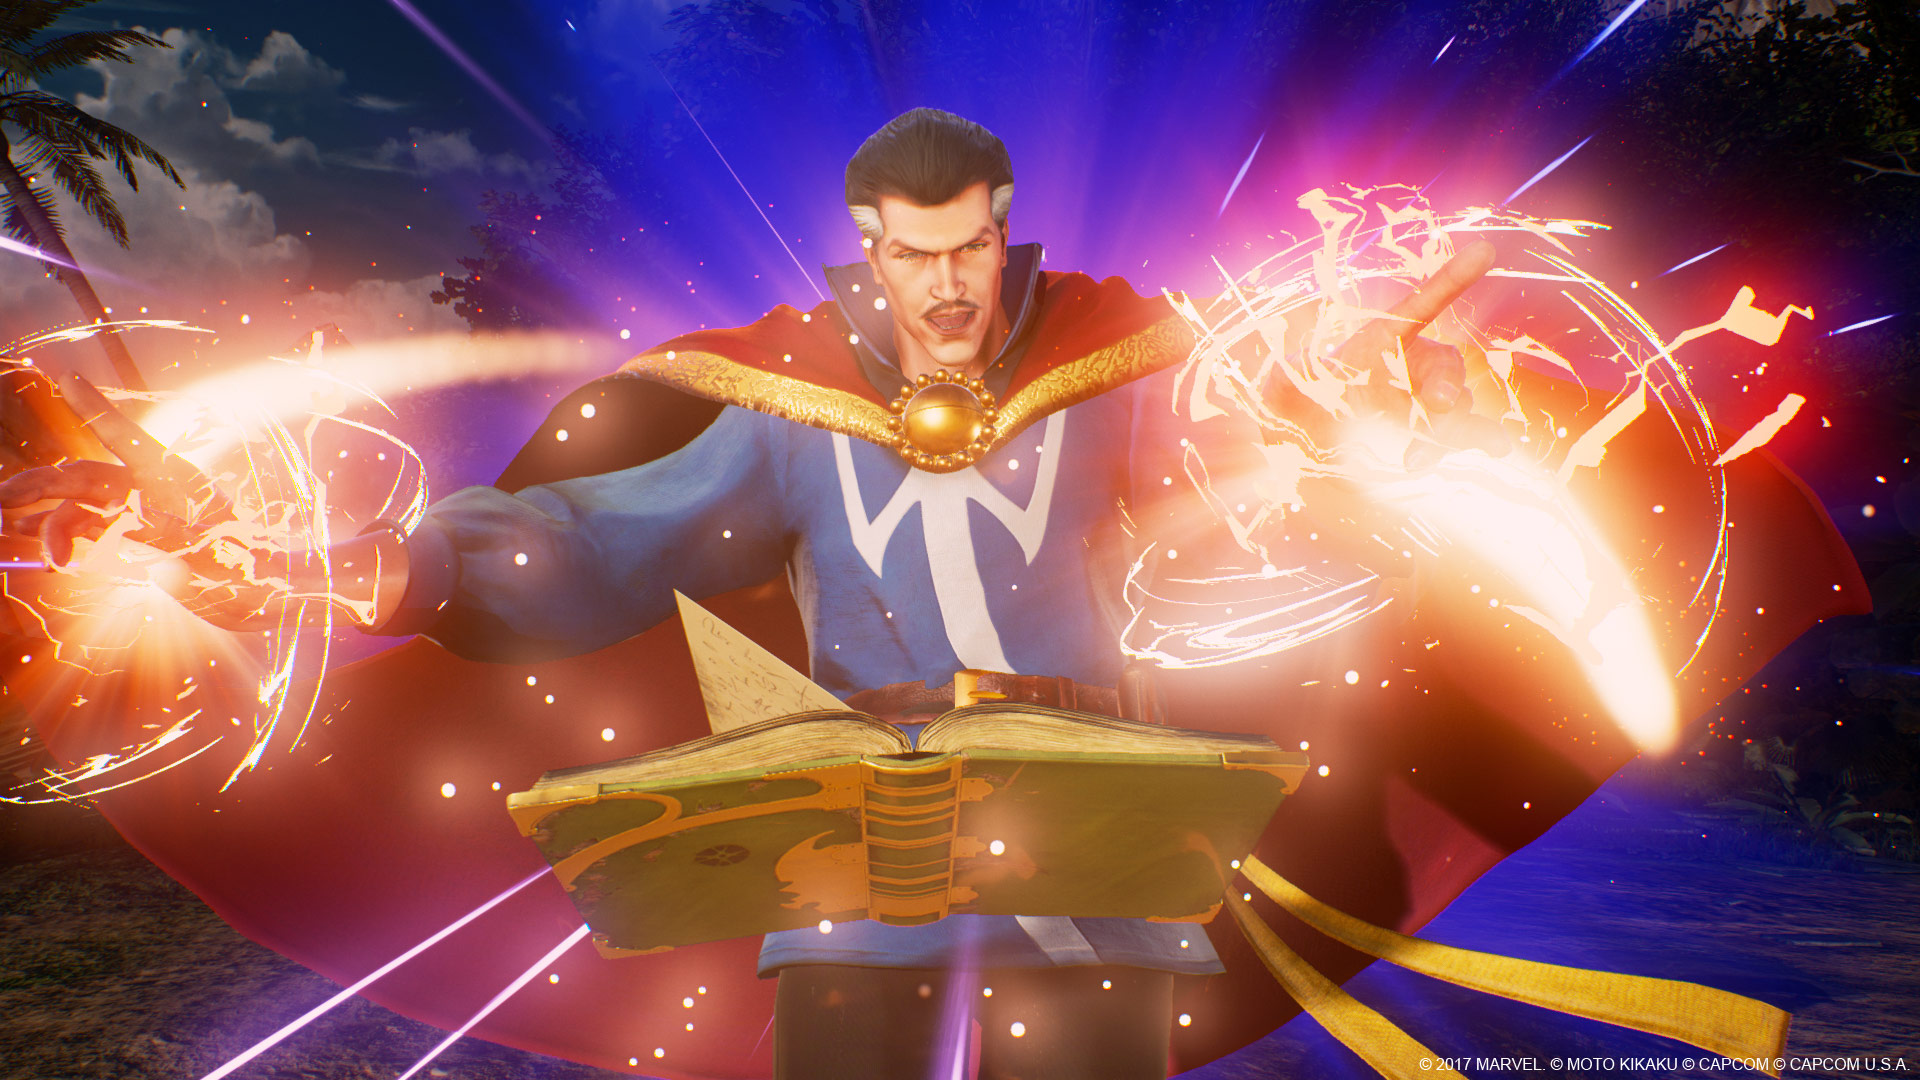 Marvel vs. Capcom: Infinite cover art and new character images from E3 2017 4 out of 26 image gallery